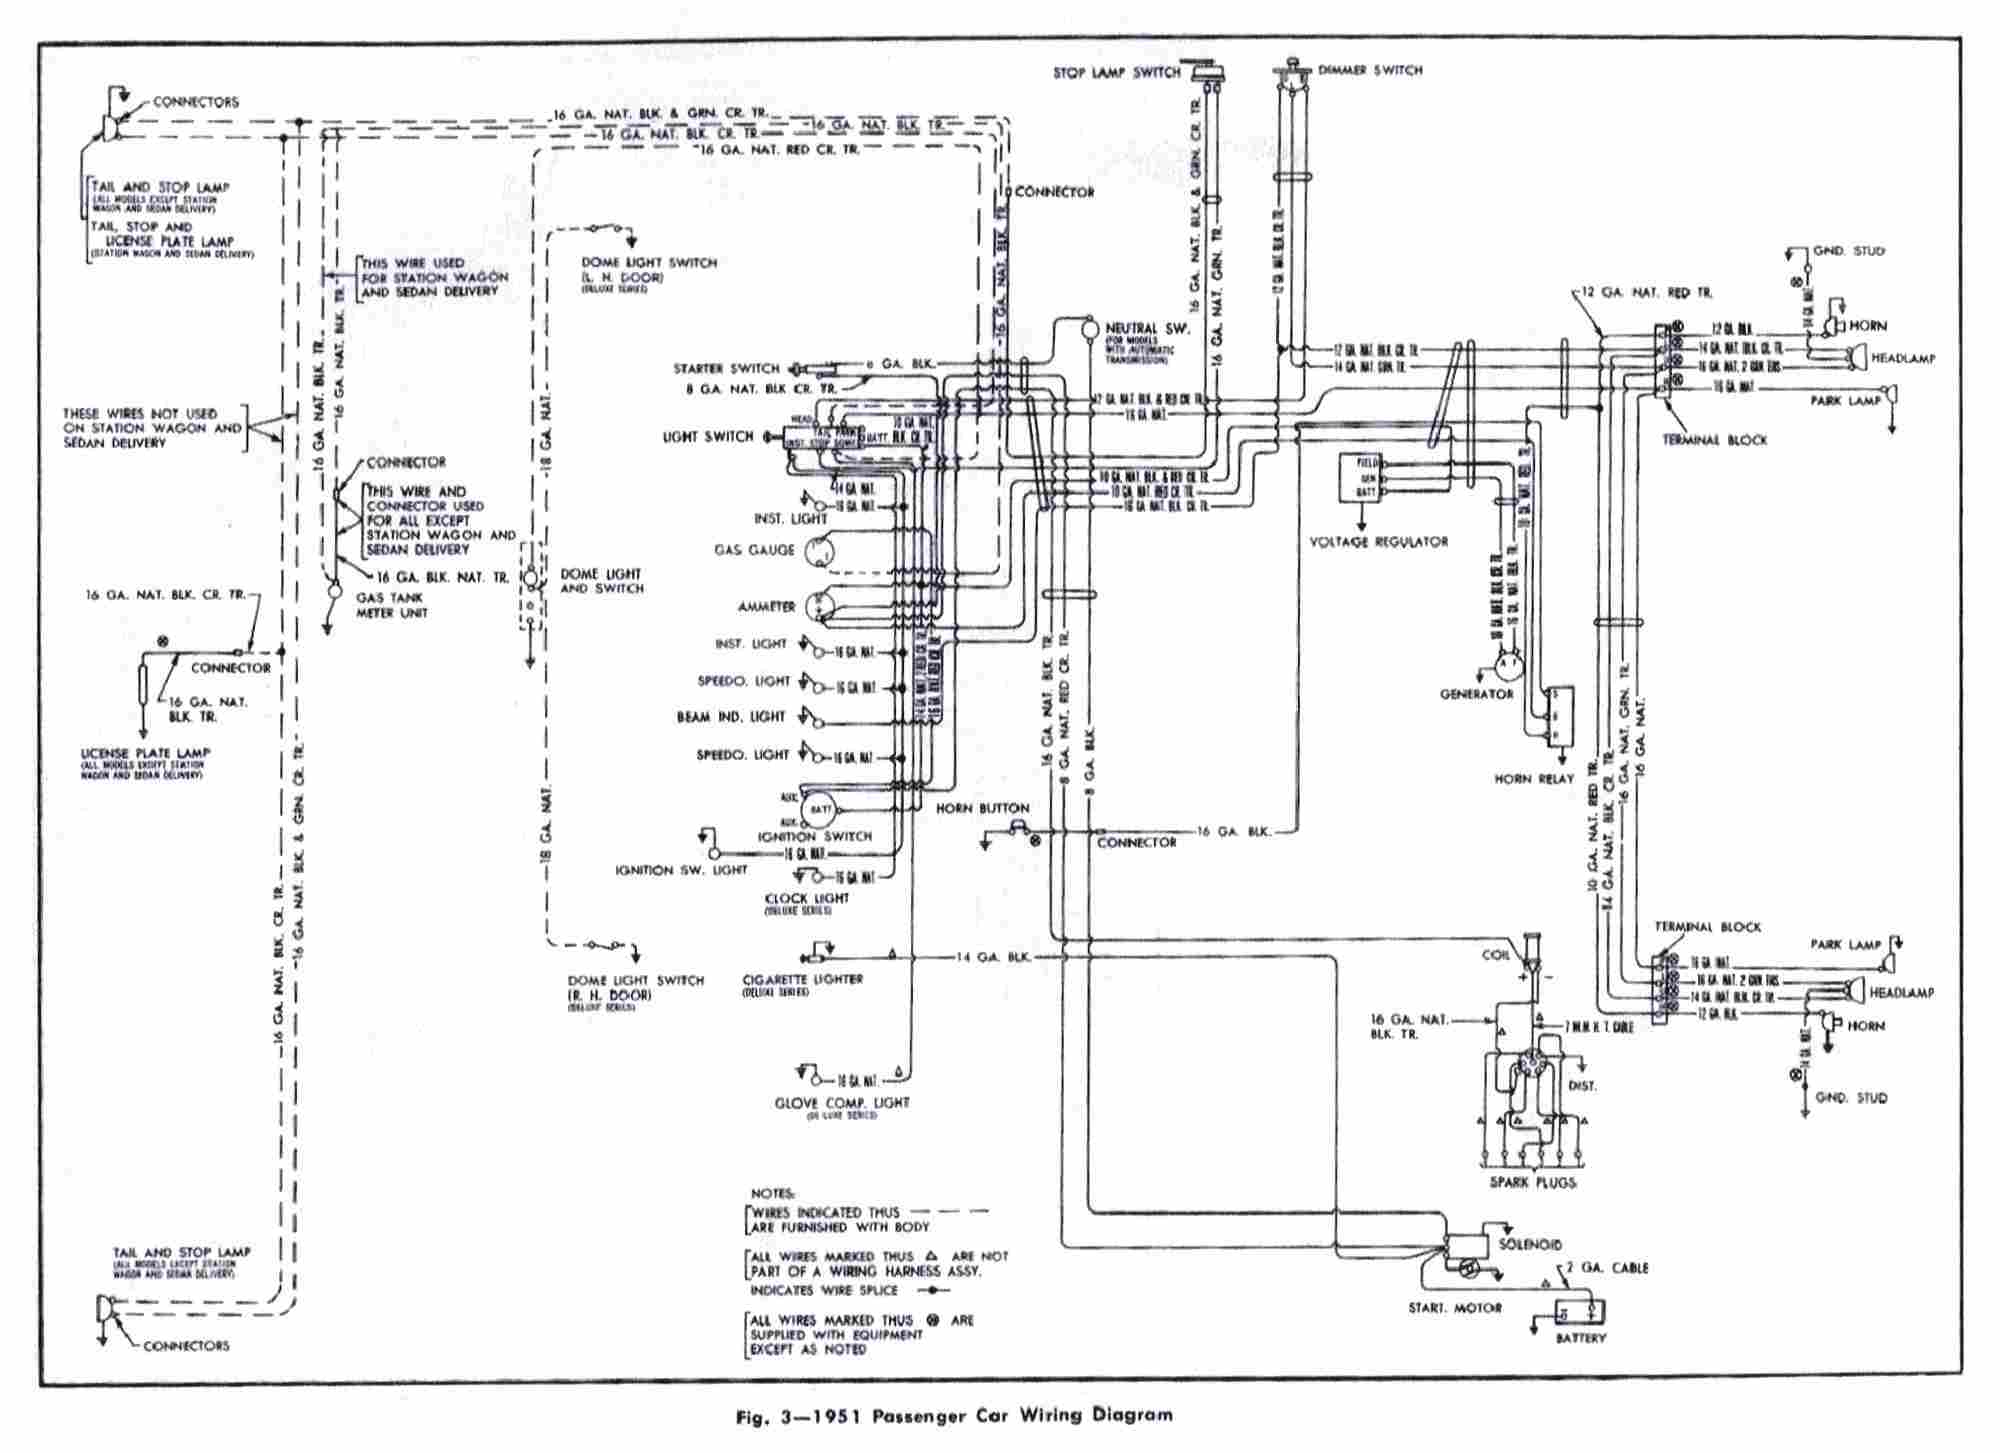 Wiring Diagram For 1988 Firebird, Wiring, Get Free Image